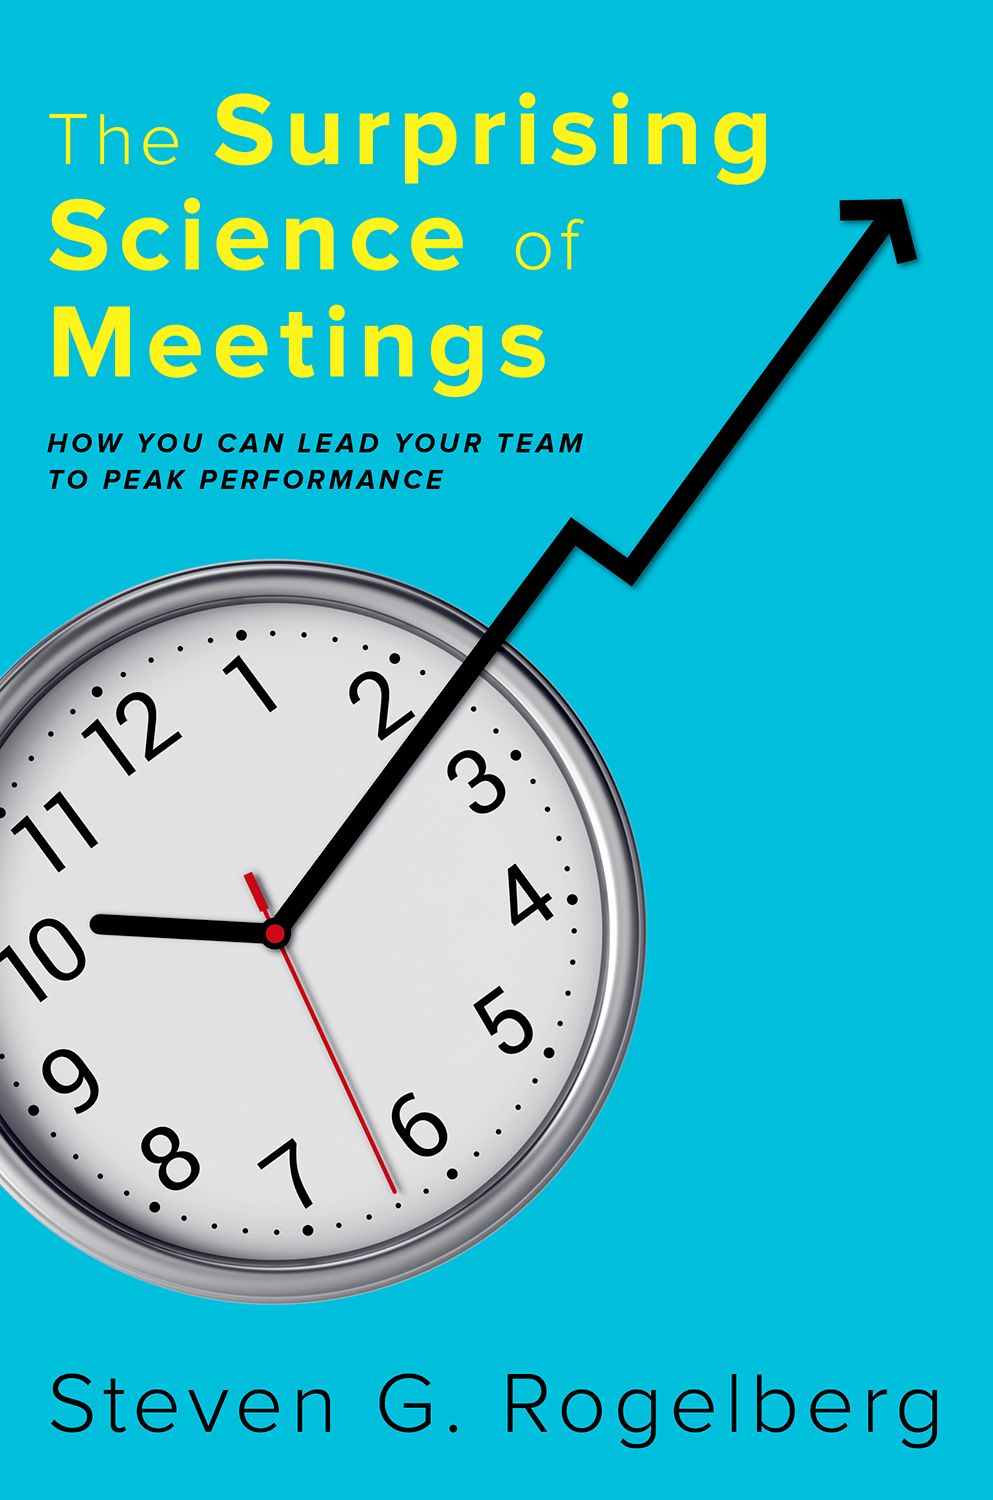 Cover Image - SURPRISING SCIENCE OF MEETINGS.jpg